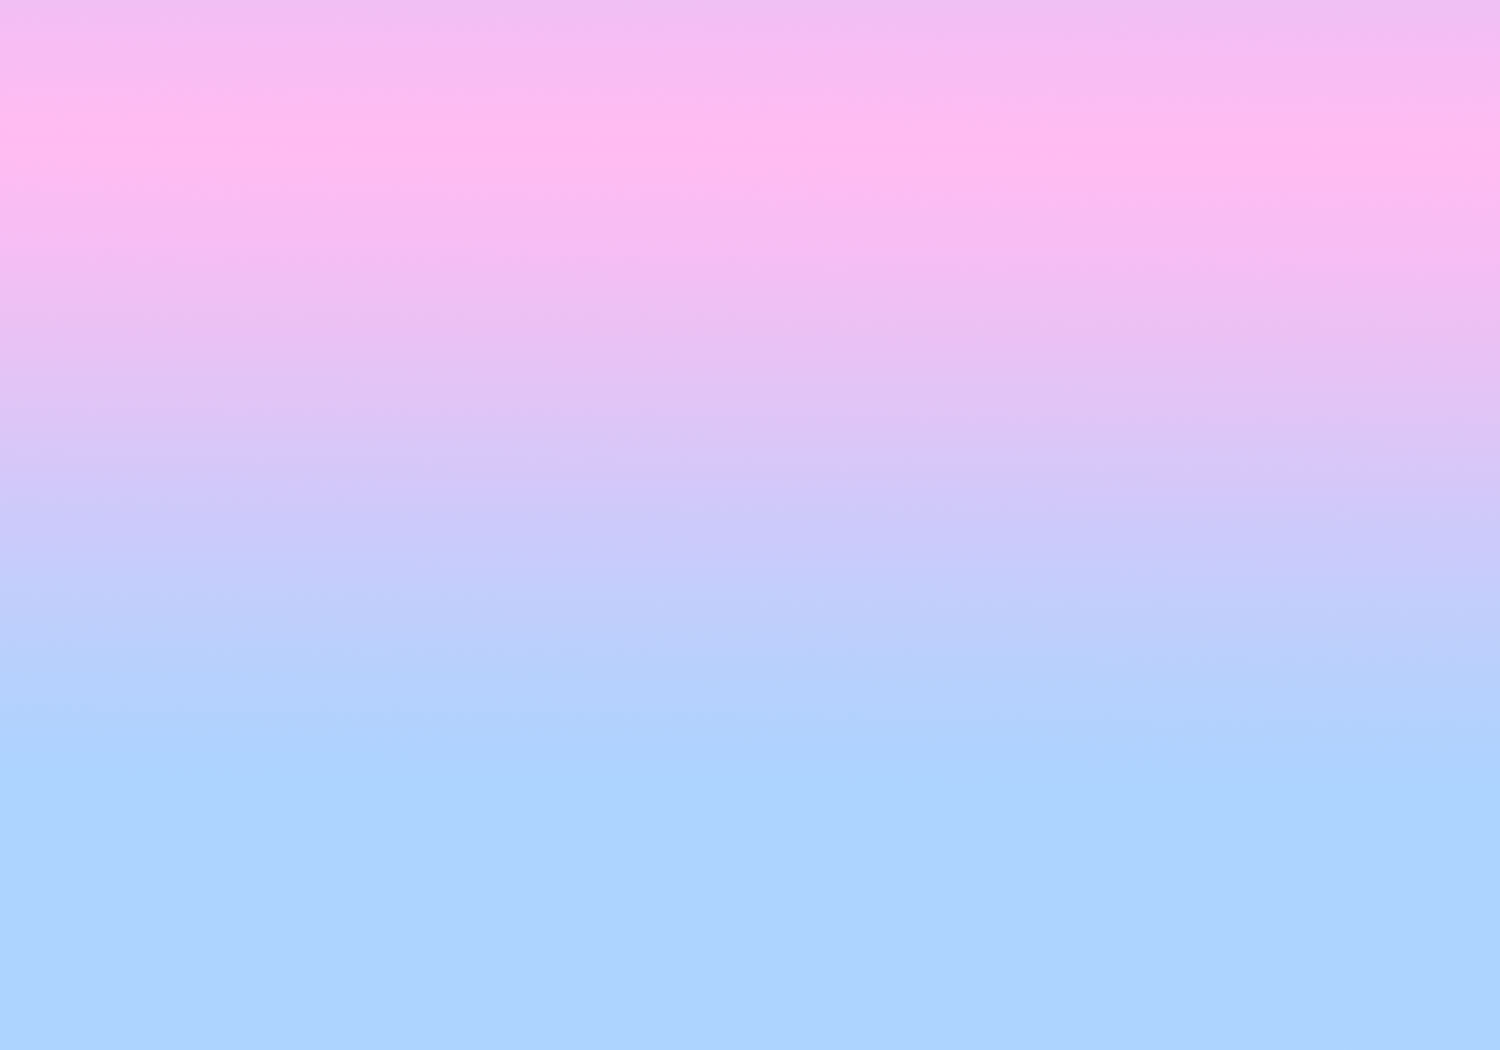 The-Chosen-Colors-For-Snow-phie's-Frozen-2-Birthday-Cake-Pink-And-Blue-